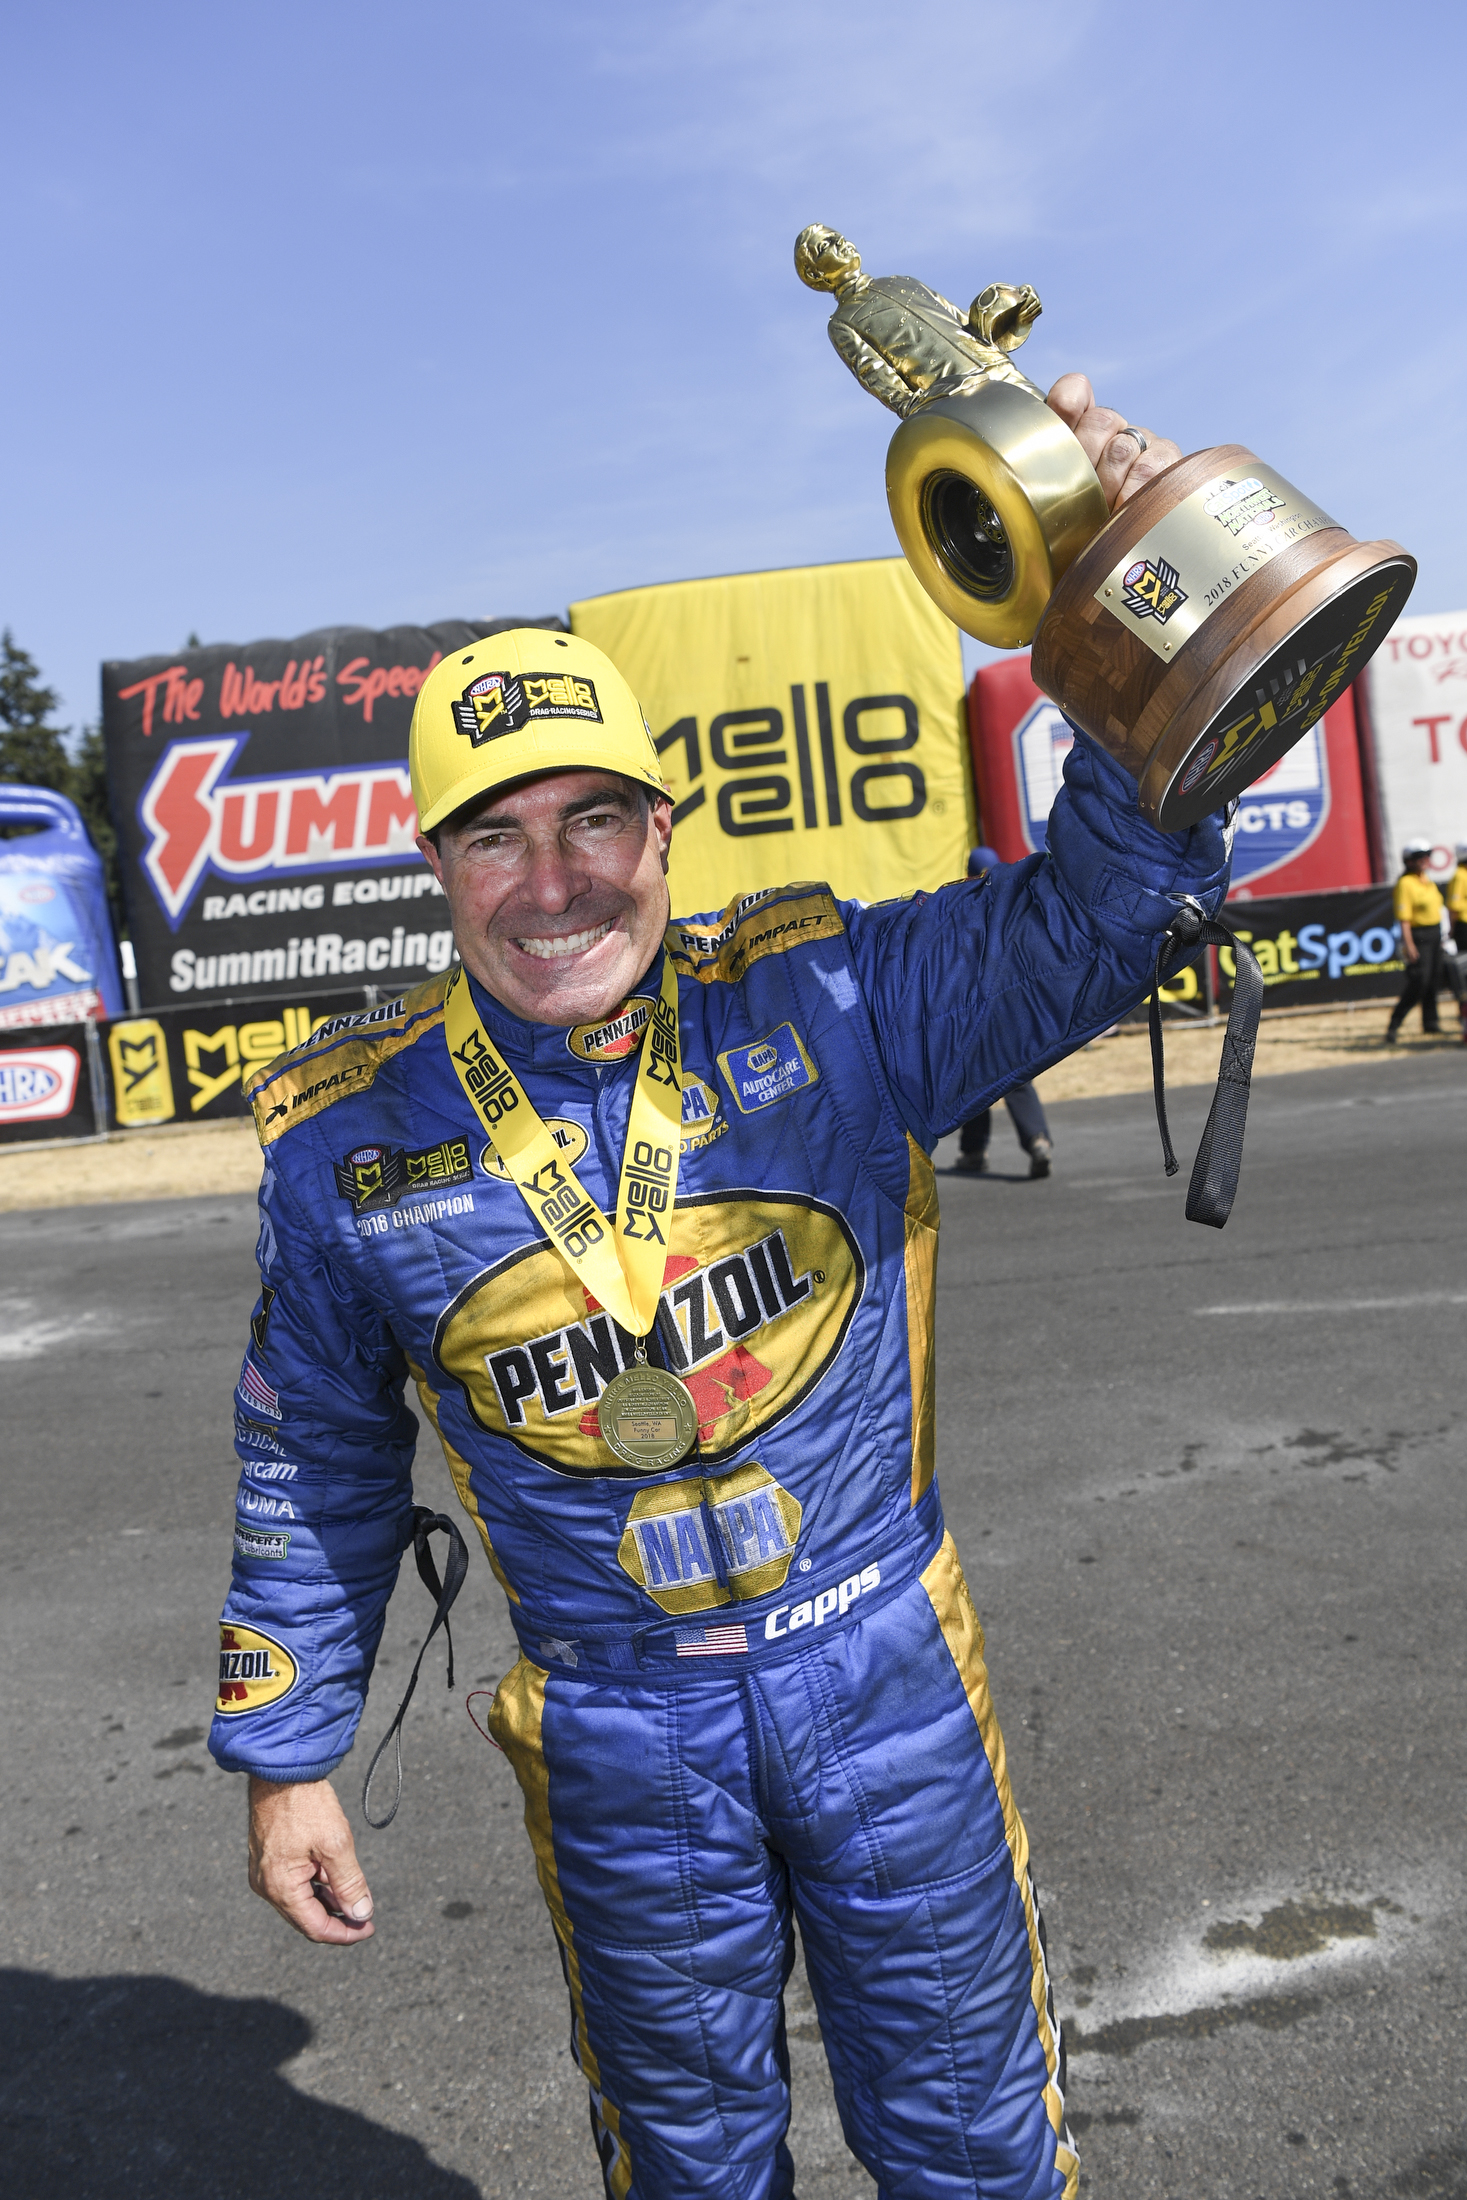 Funny Car pilot Ron Capps with the Wally after winning the 2018 CatSpot NHRA Northwest Nationals